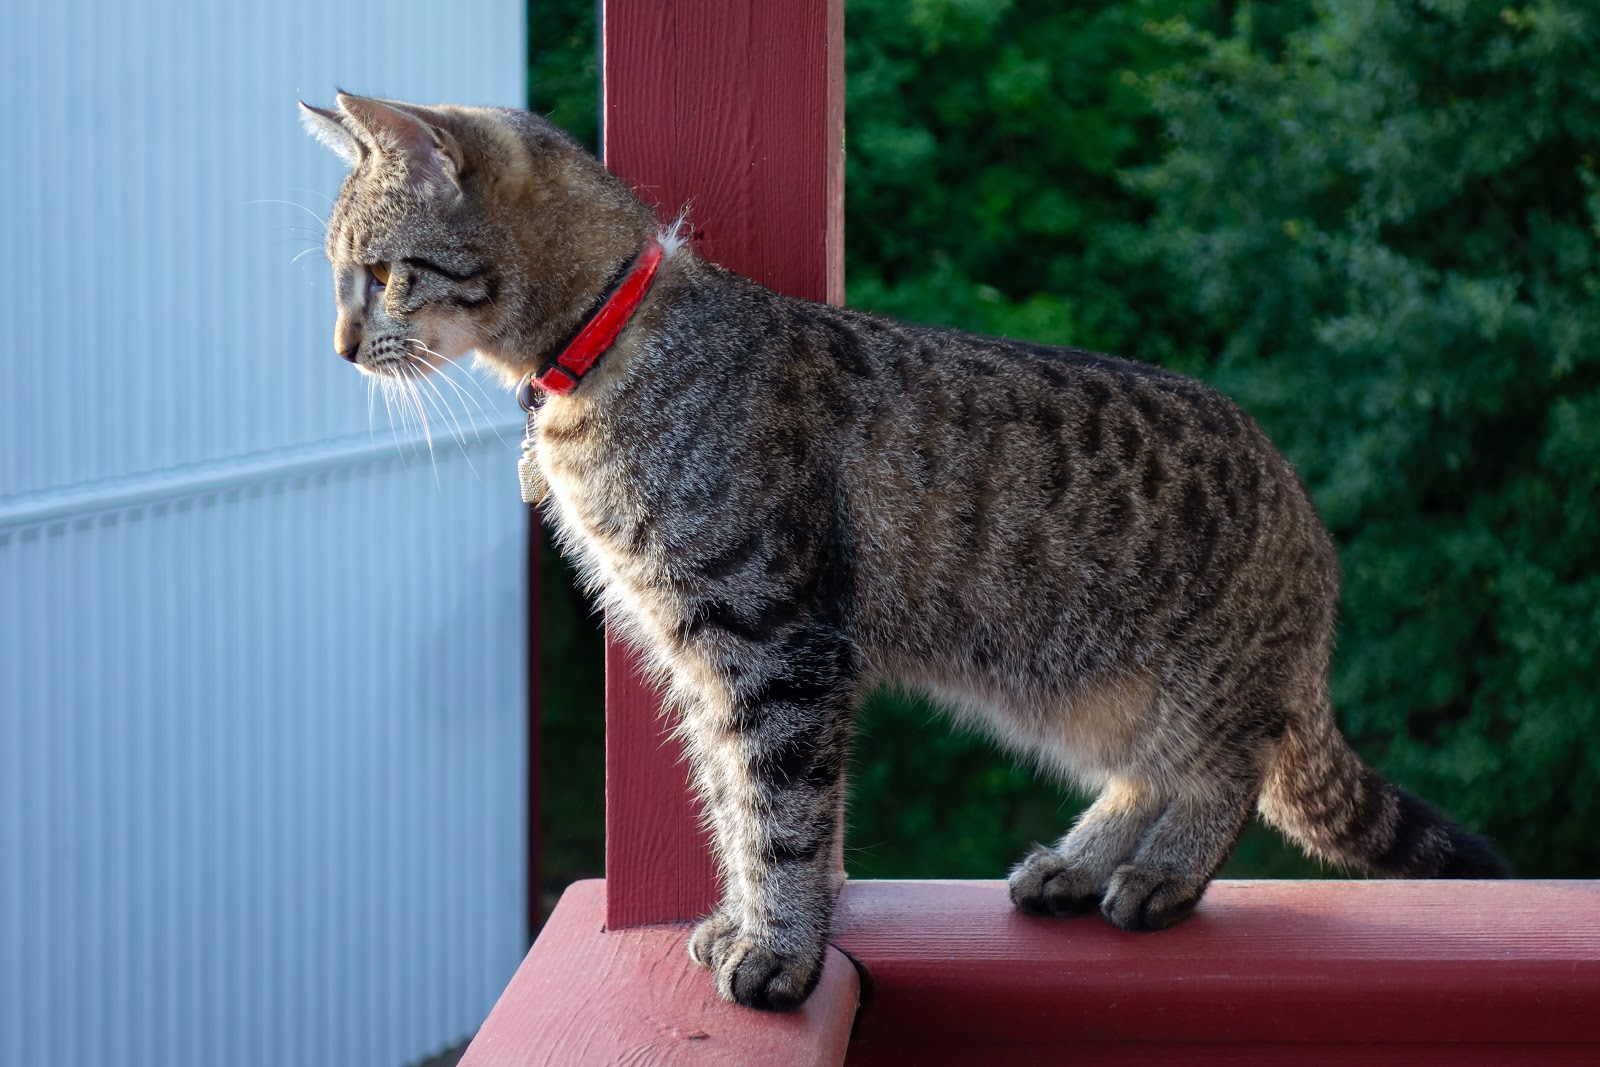 a healthy cat perched on a red porch